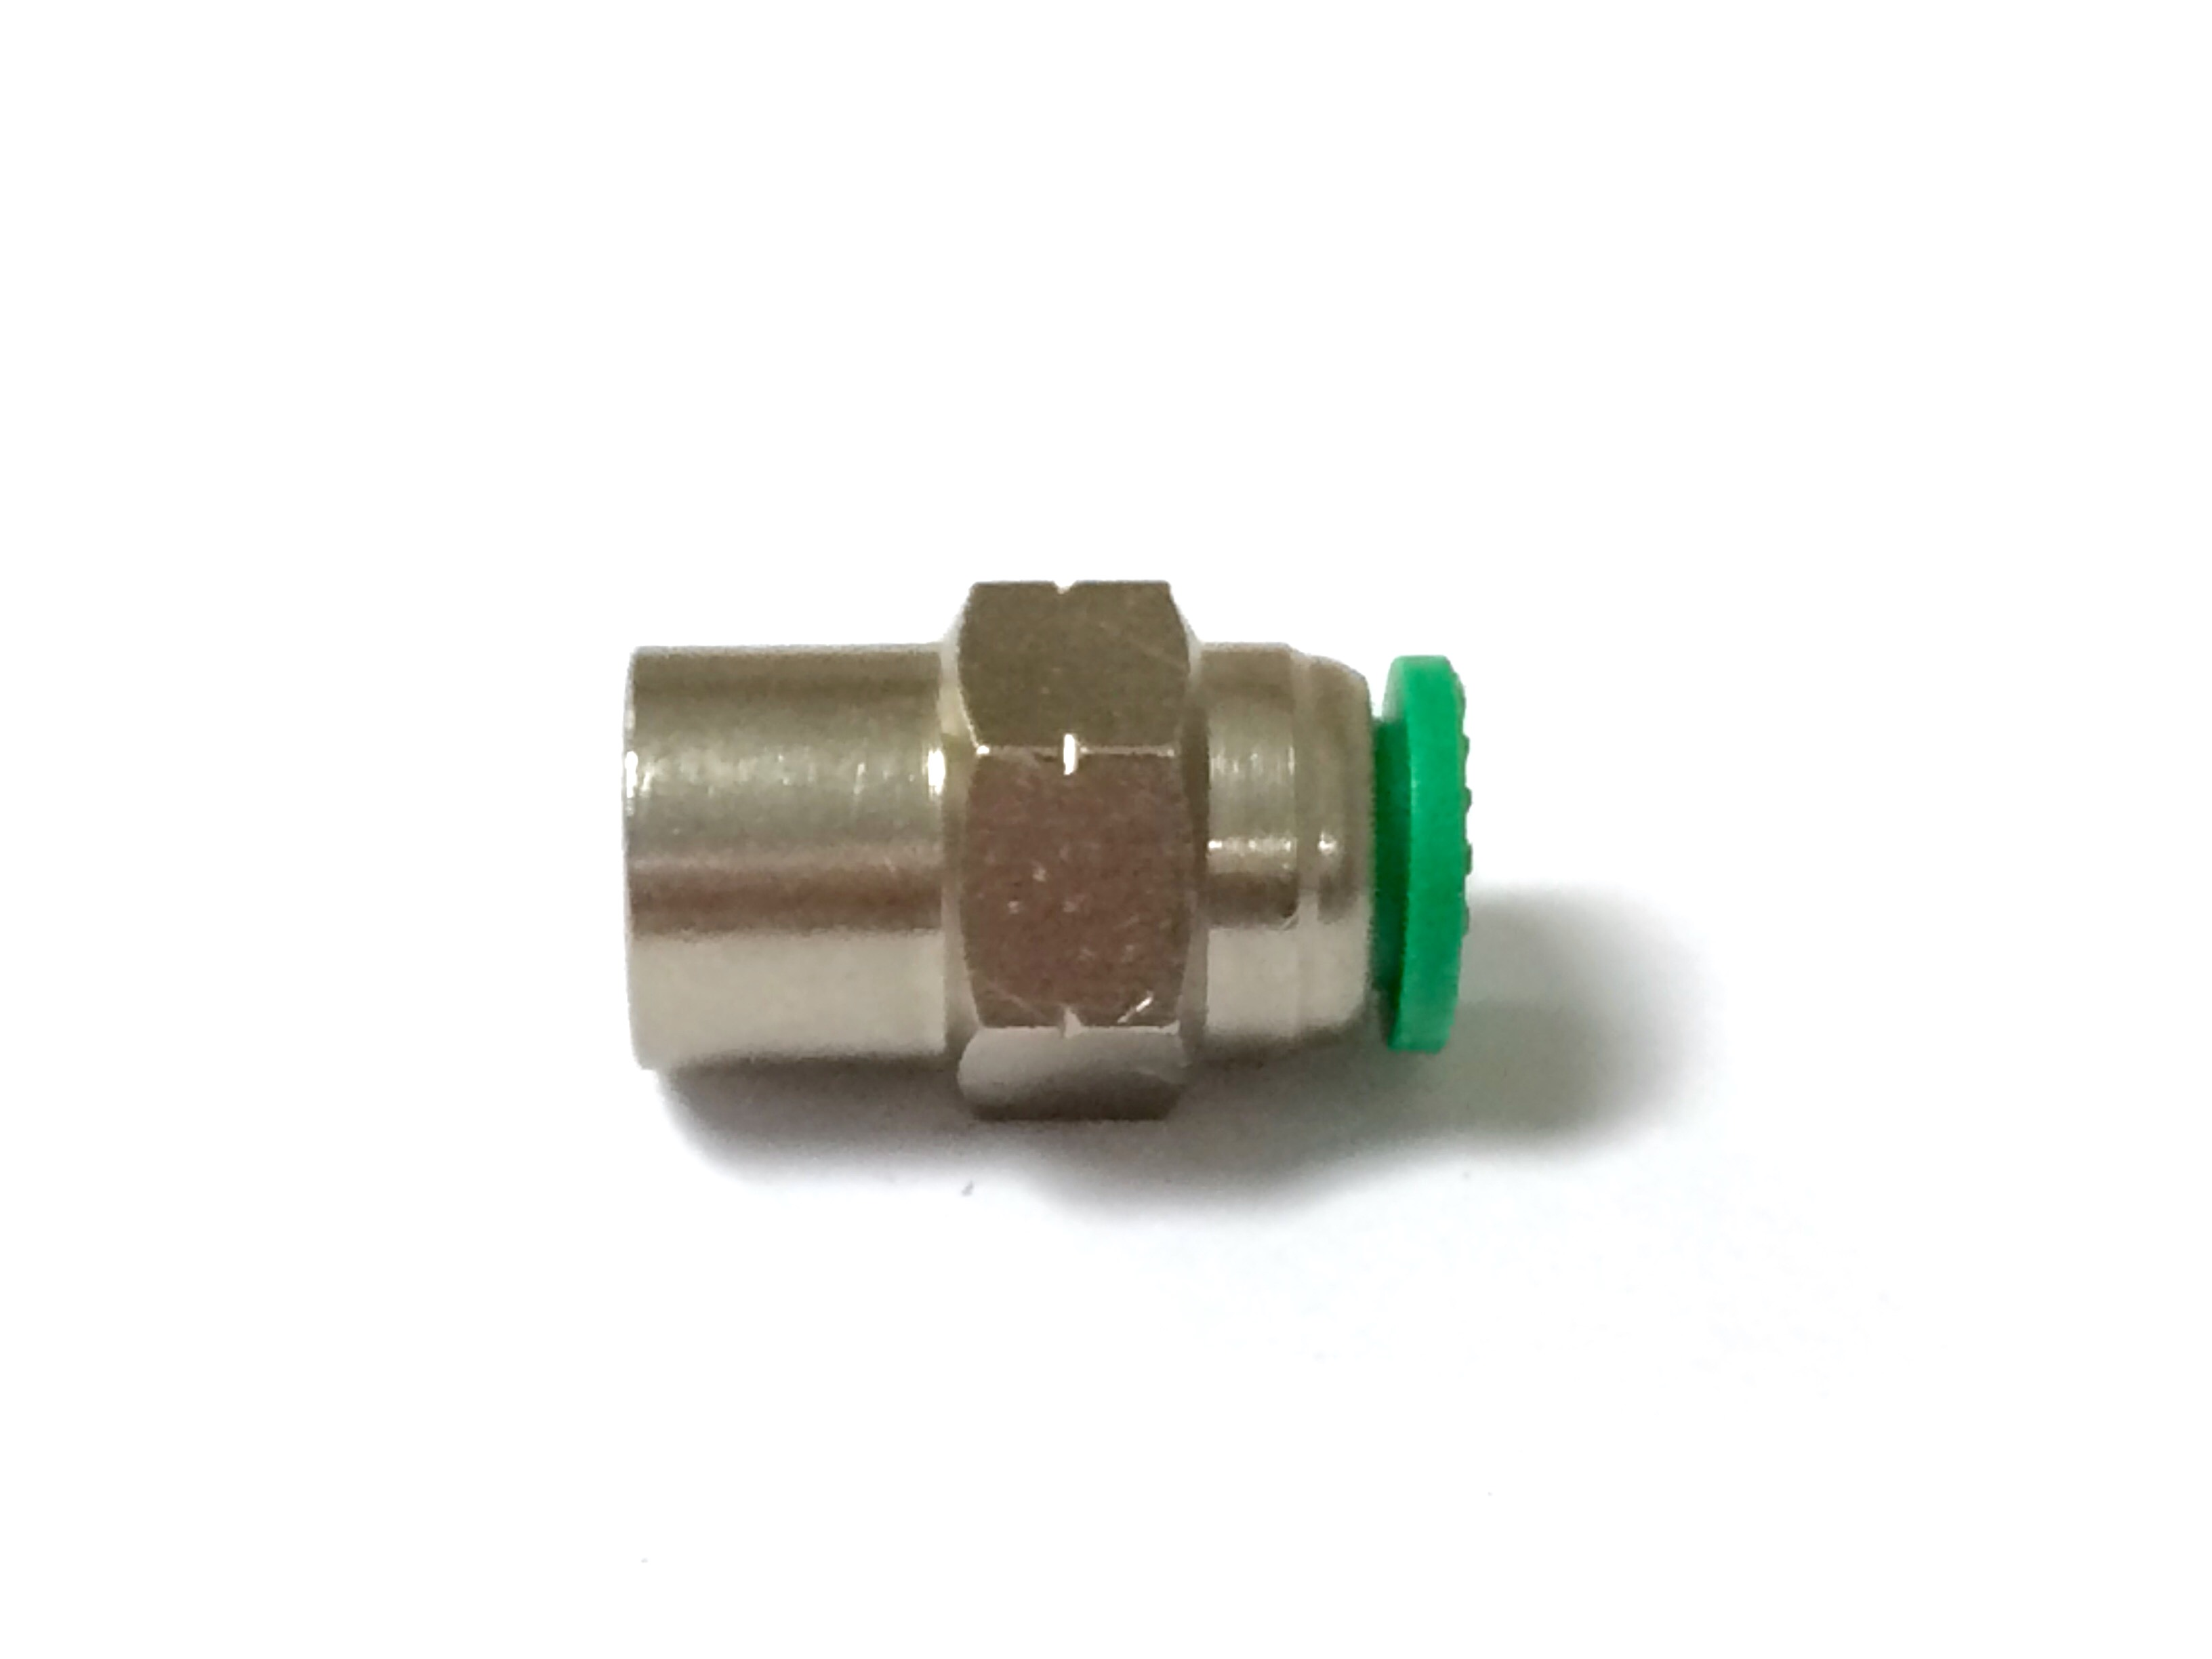 Nickel plated push in male connector car wash super store